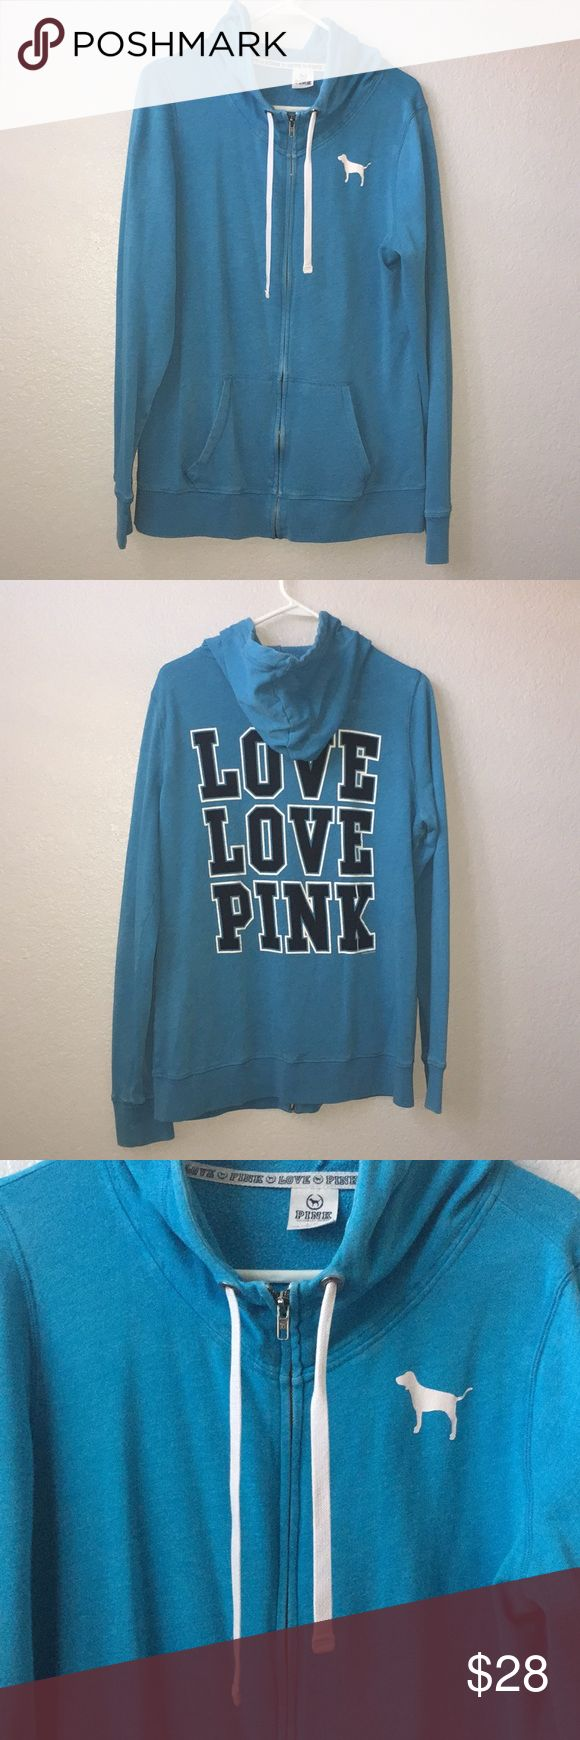 VS PINK Teal Zip Up Hoodie Women's Large. Preowned and plenty of use left in this. Teal with Black/White Love Pink on back. PINK Victoria's Secret Tops Sweatshirts & Hoodies